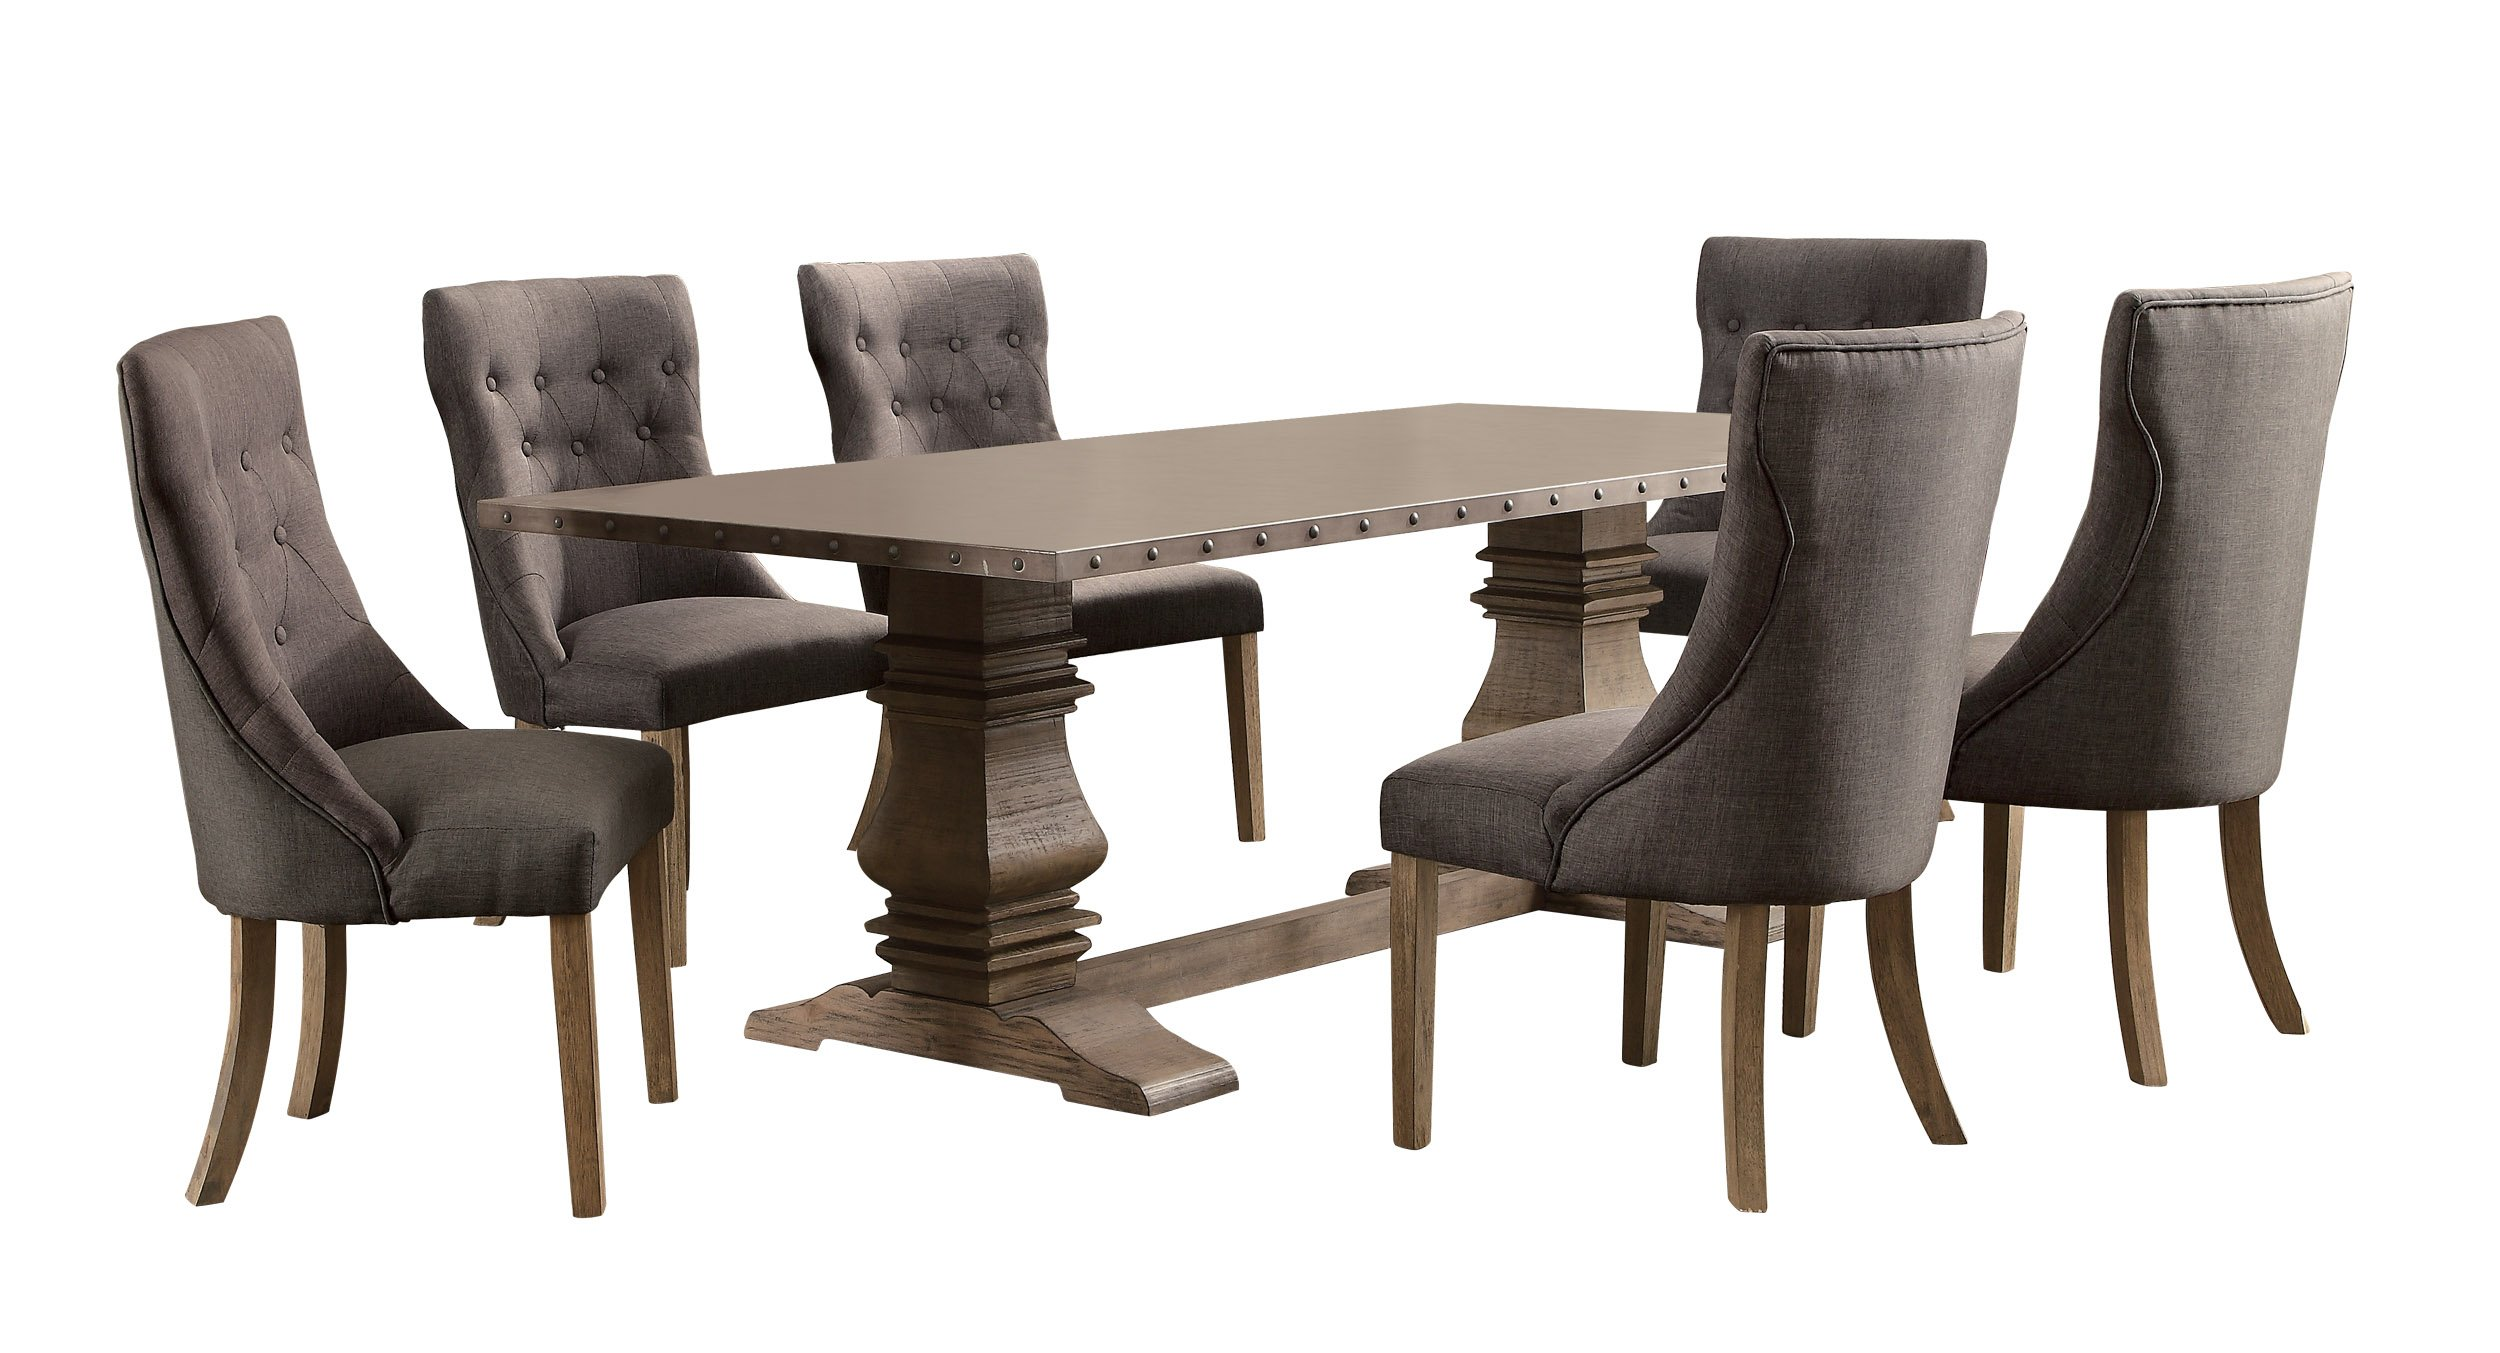 Homelegance Anna Claire 7-Piece Dining Set 84-inch Zinc Top Dining Table and 6 Button Tufted Wingback Chairs by Homelegance (Image #1)